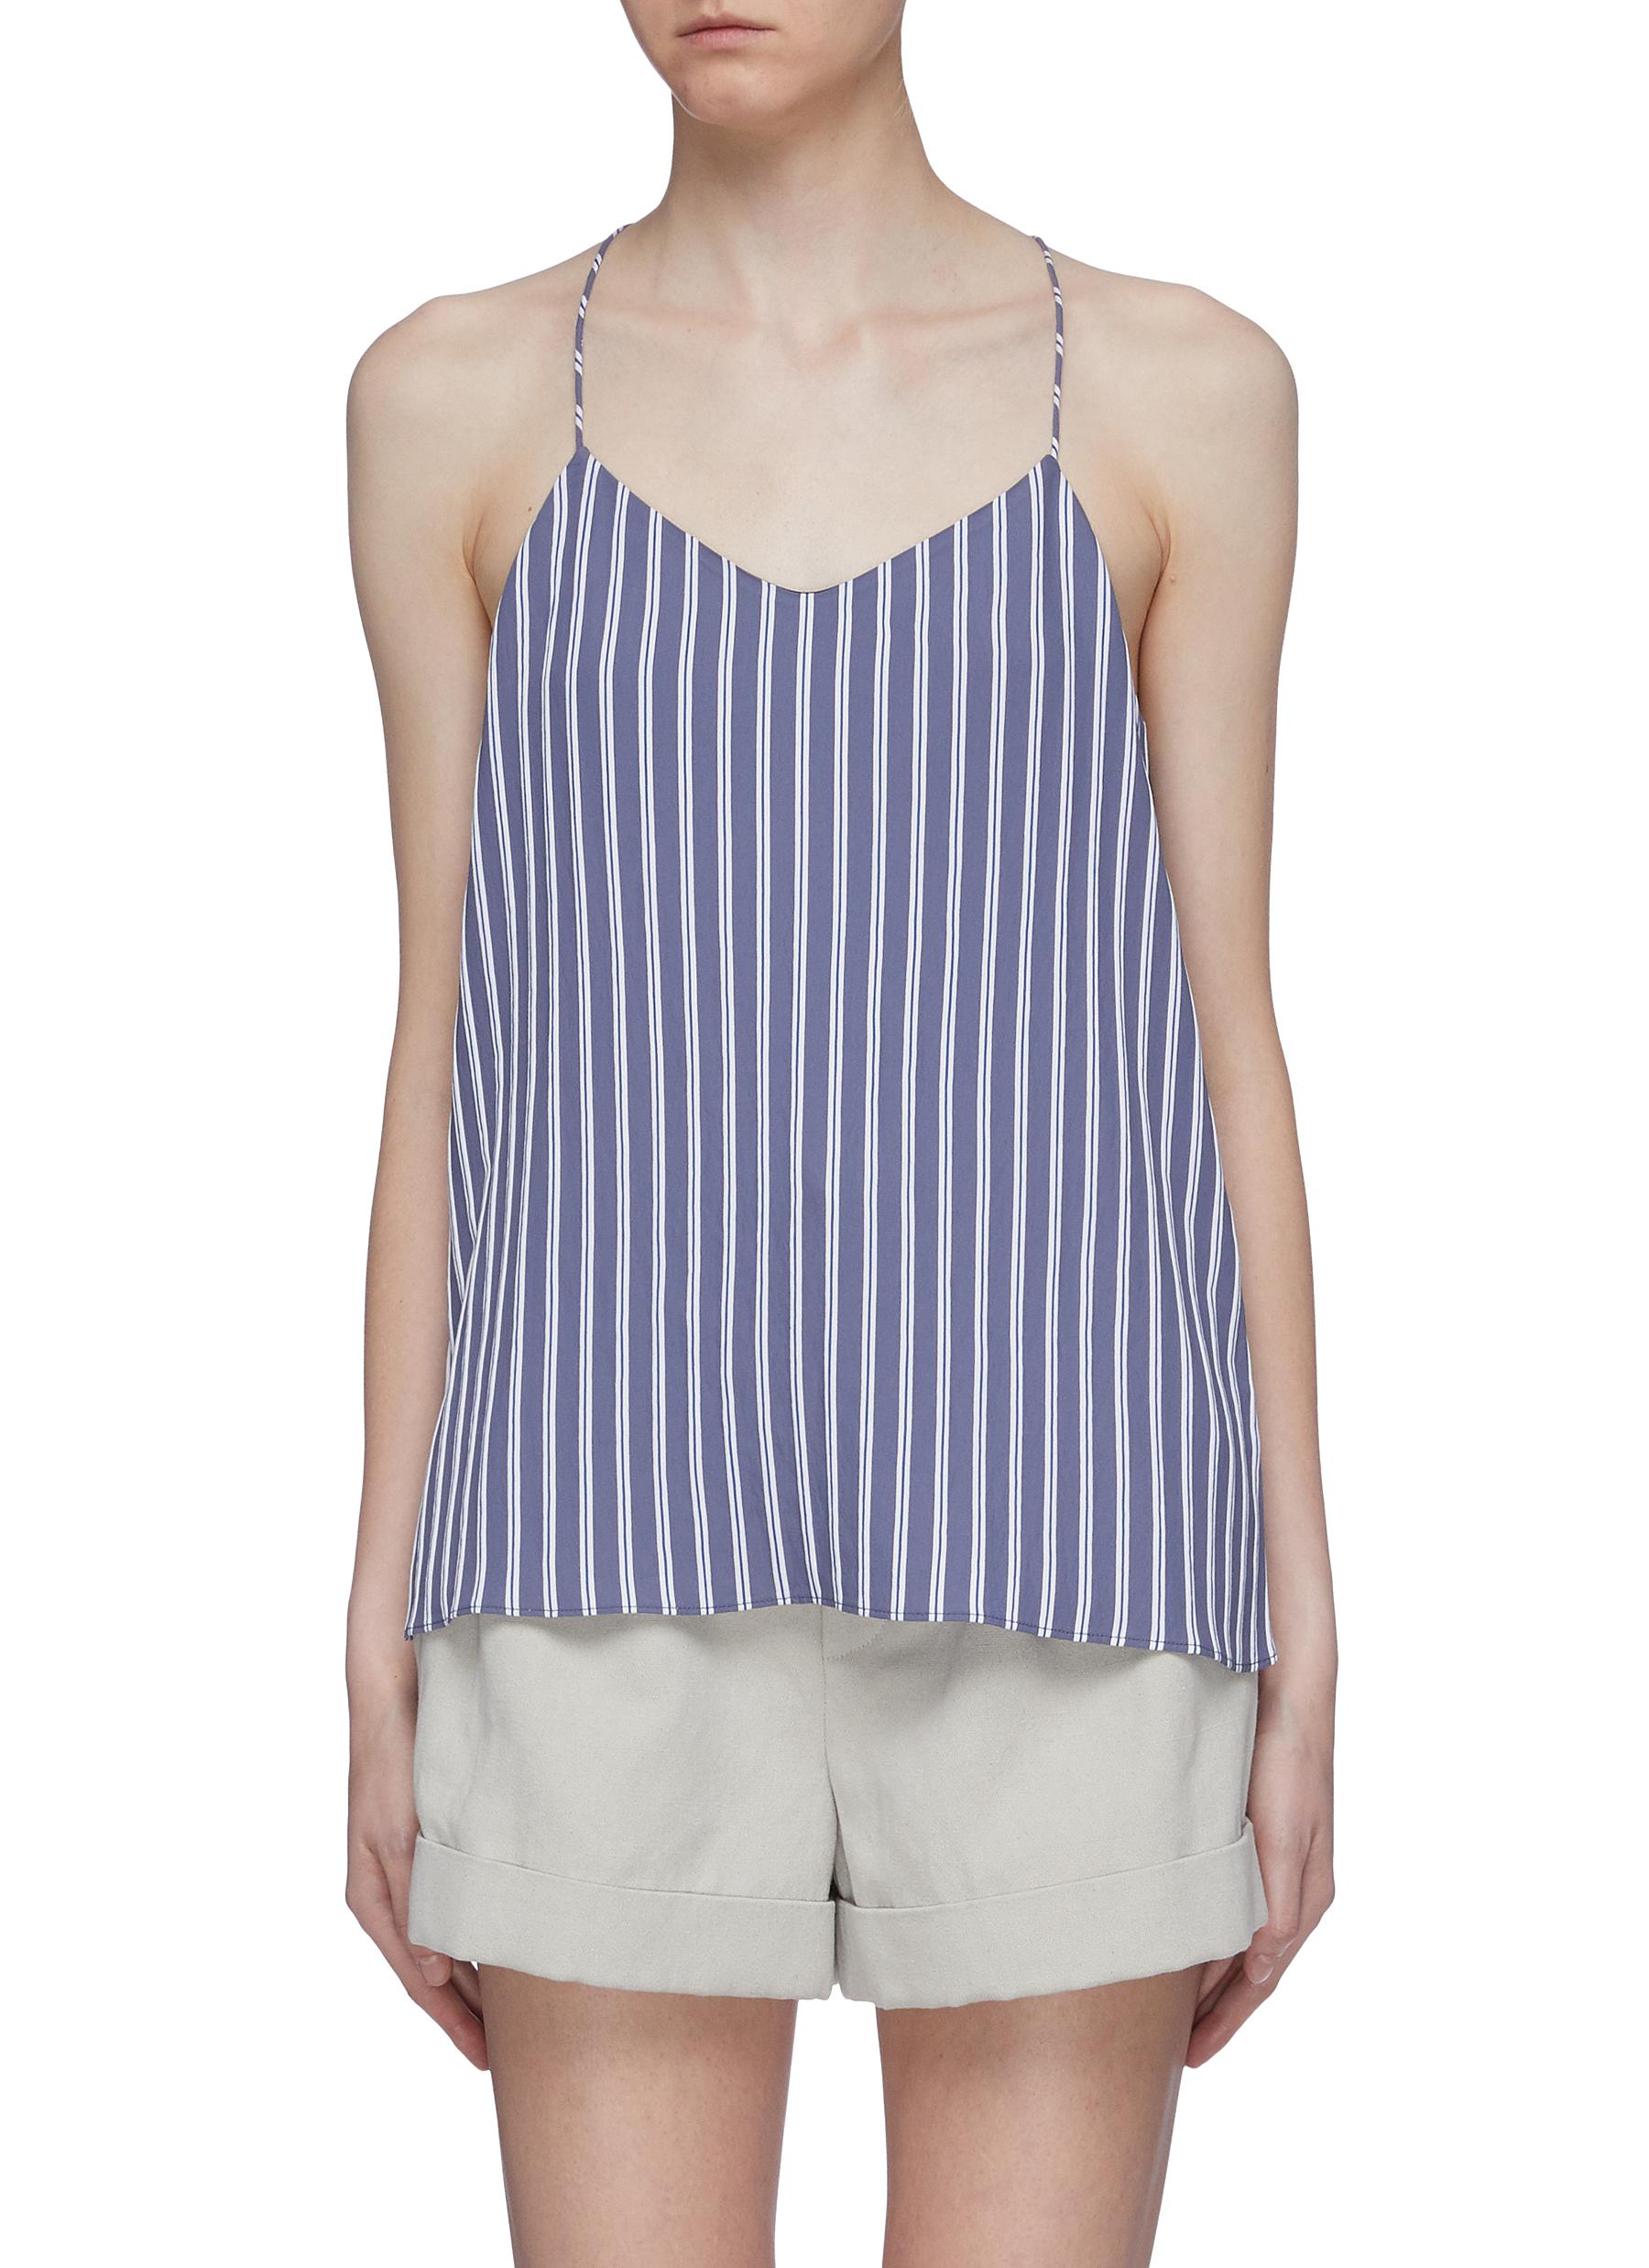 Stripe twill racerback camisole top by Tibi